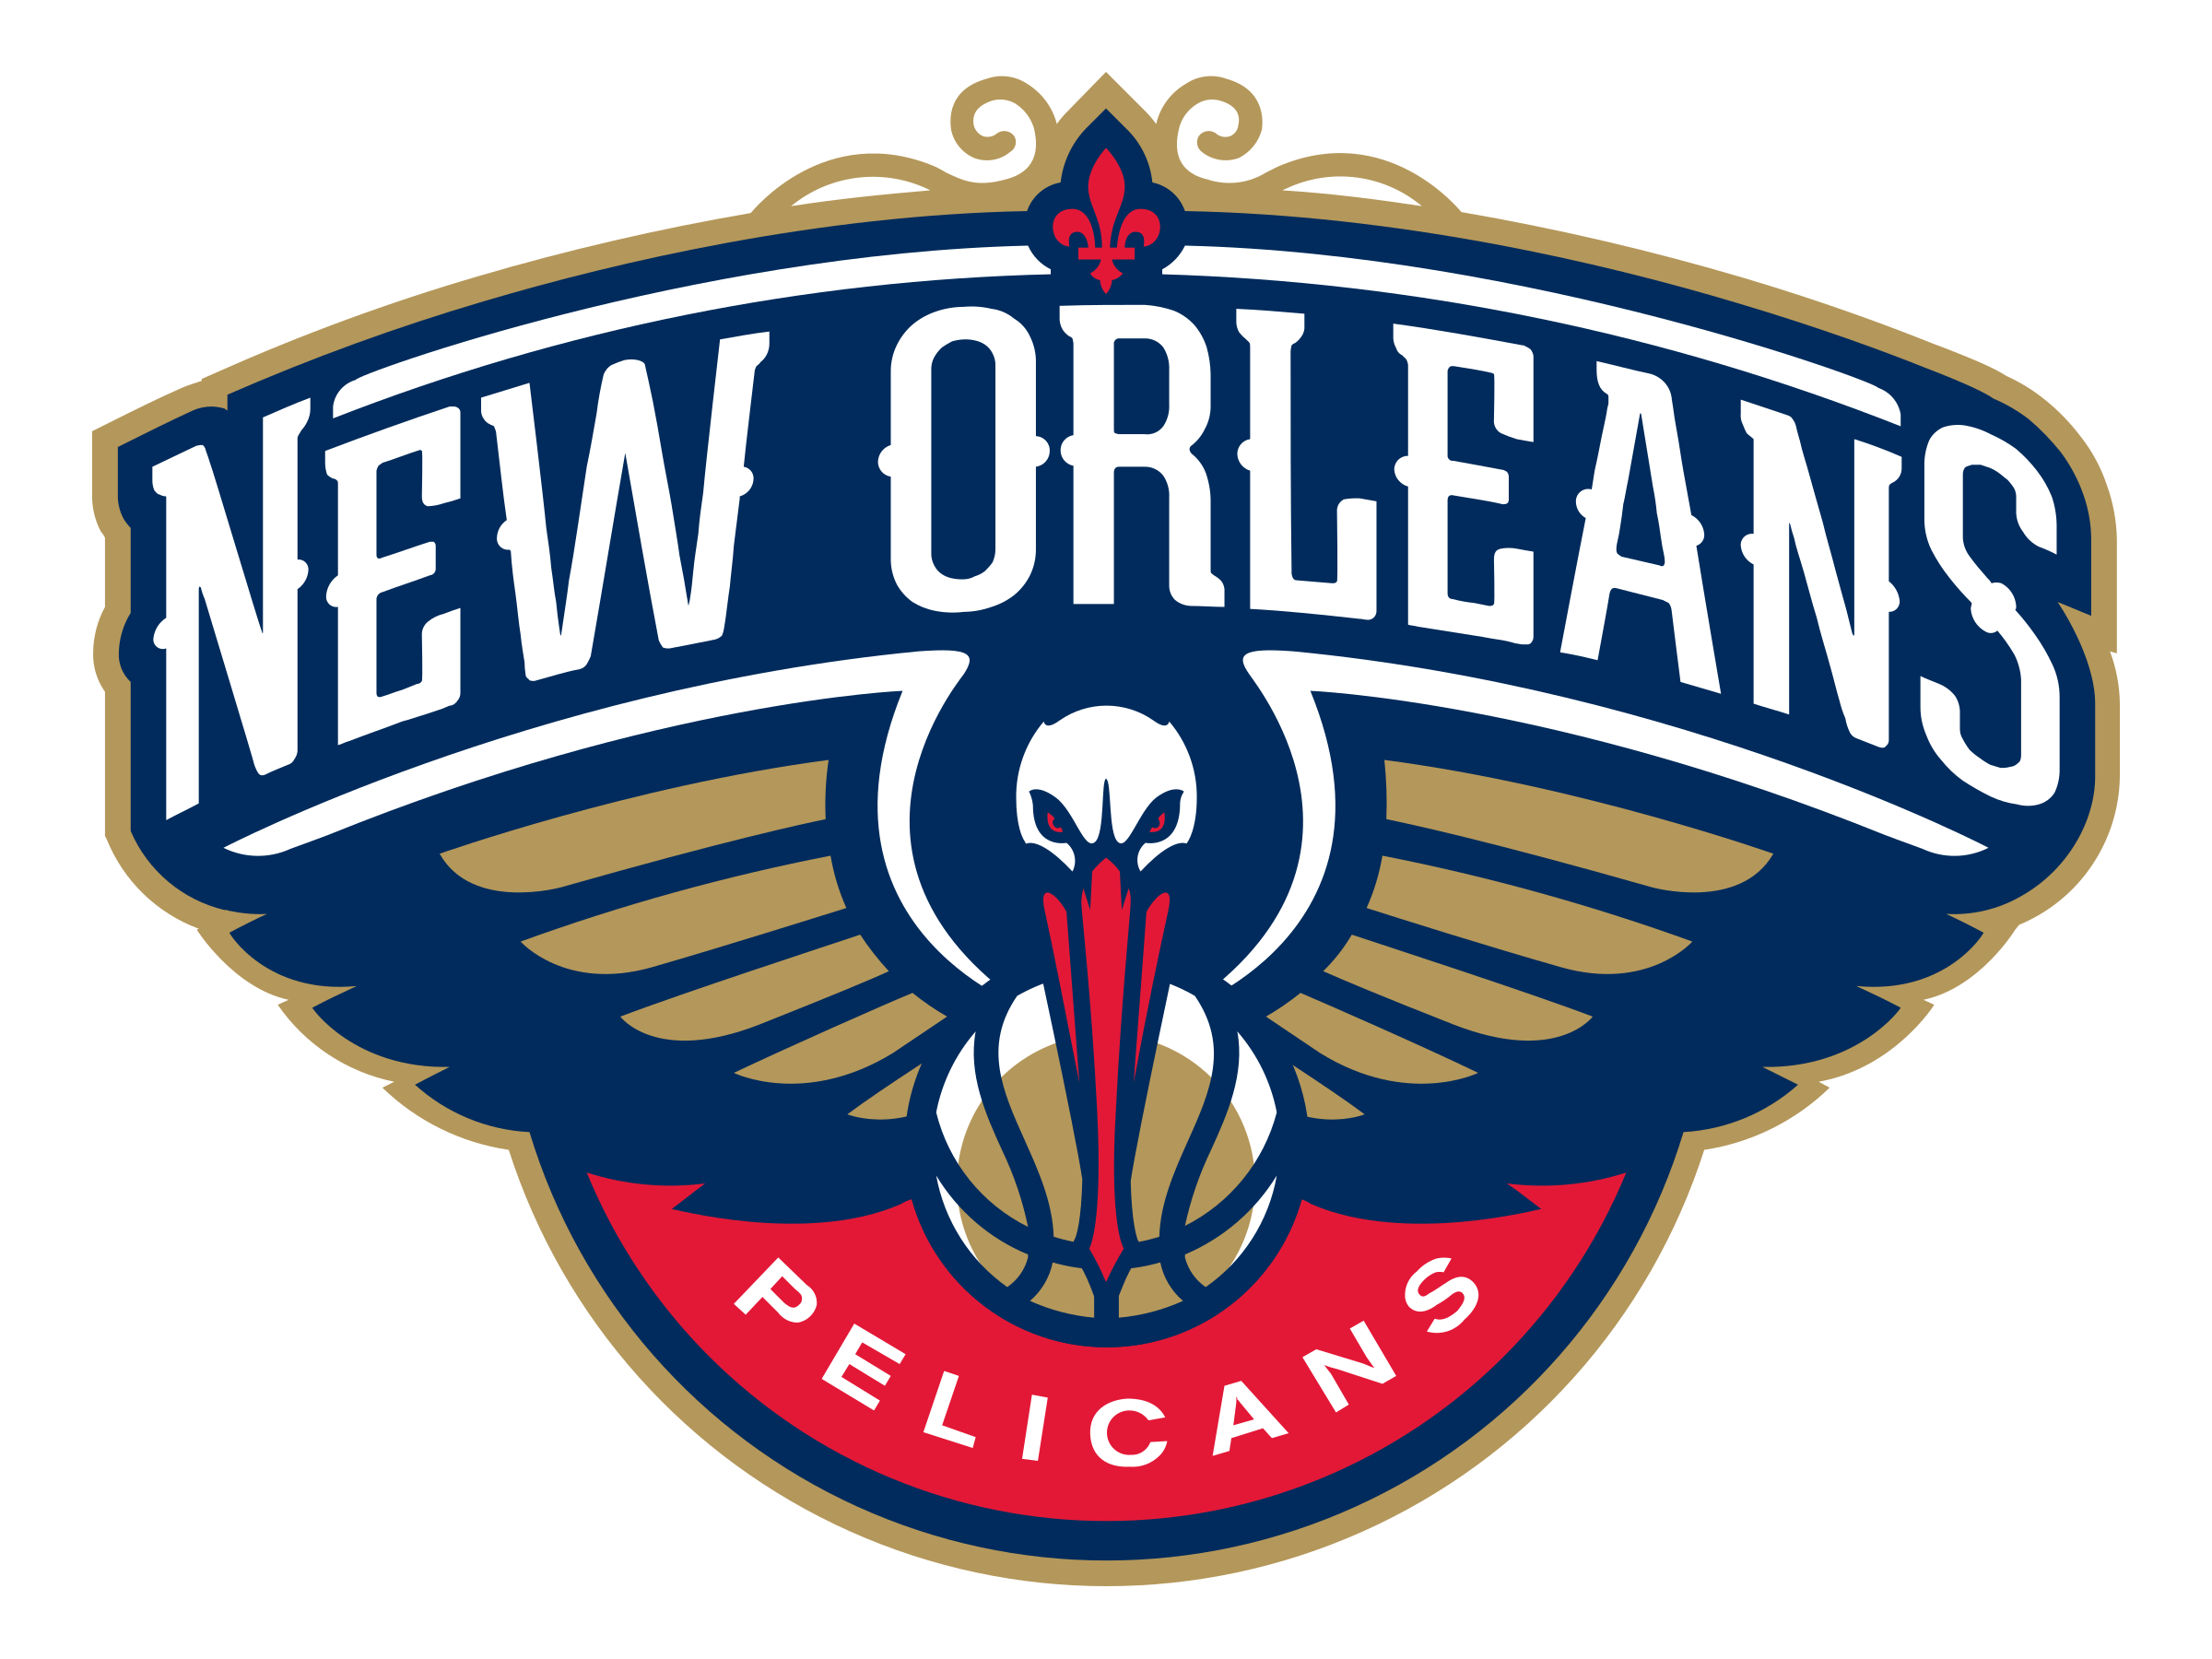 New Orleans Pelicans Logo Transparent New Orleans Pelicans Pelicans Basketball Team Logo Design